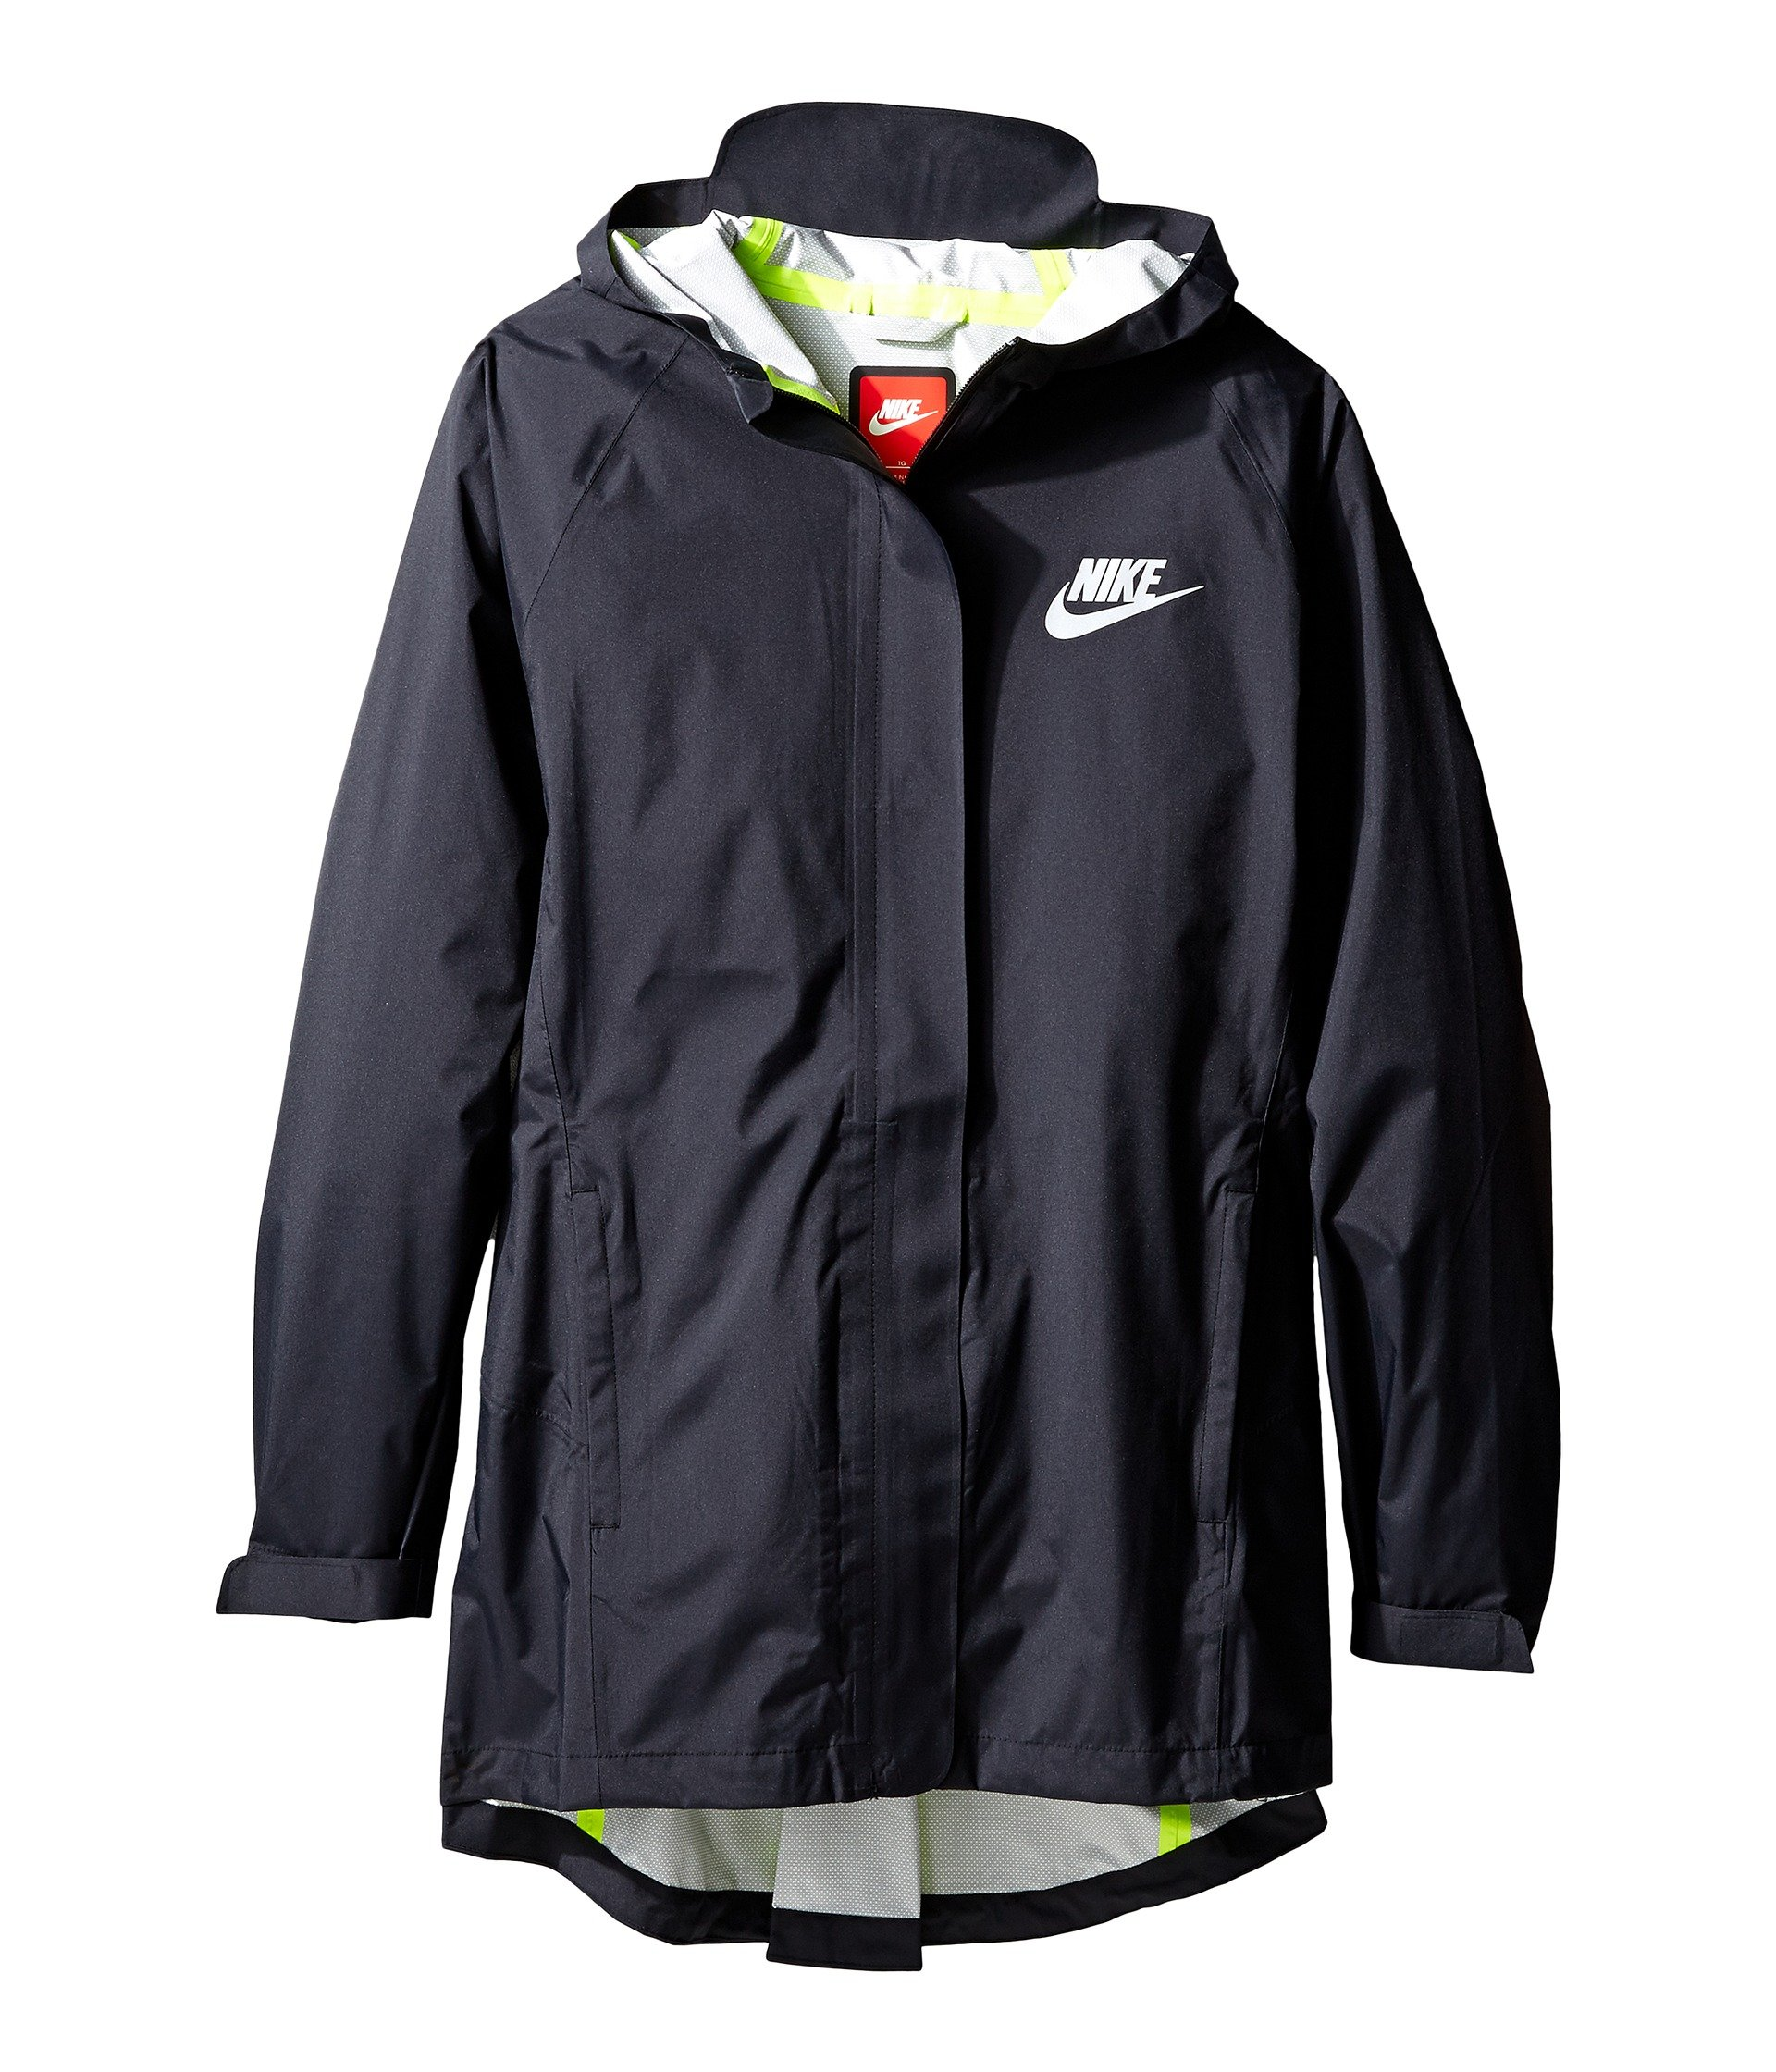 Nike Sportswear Big Kids' (Girls') Jacket (L, Black/Black/Volt) by NIKE